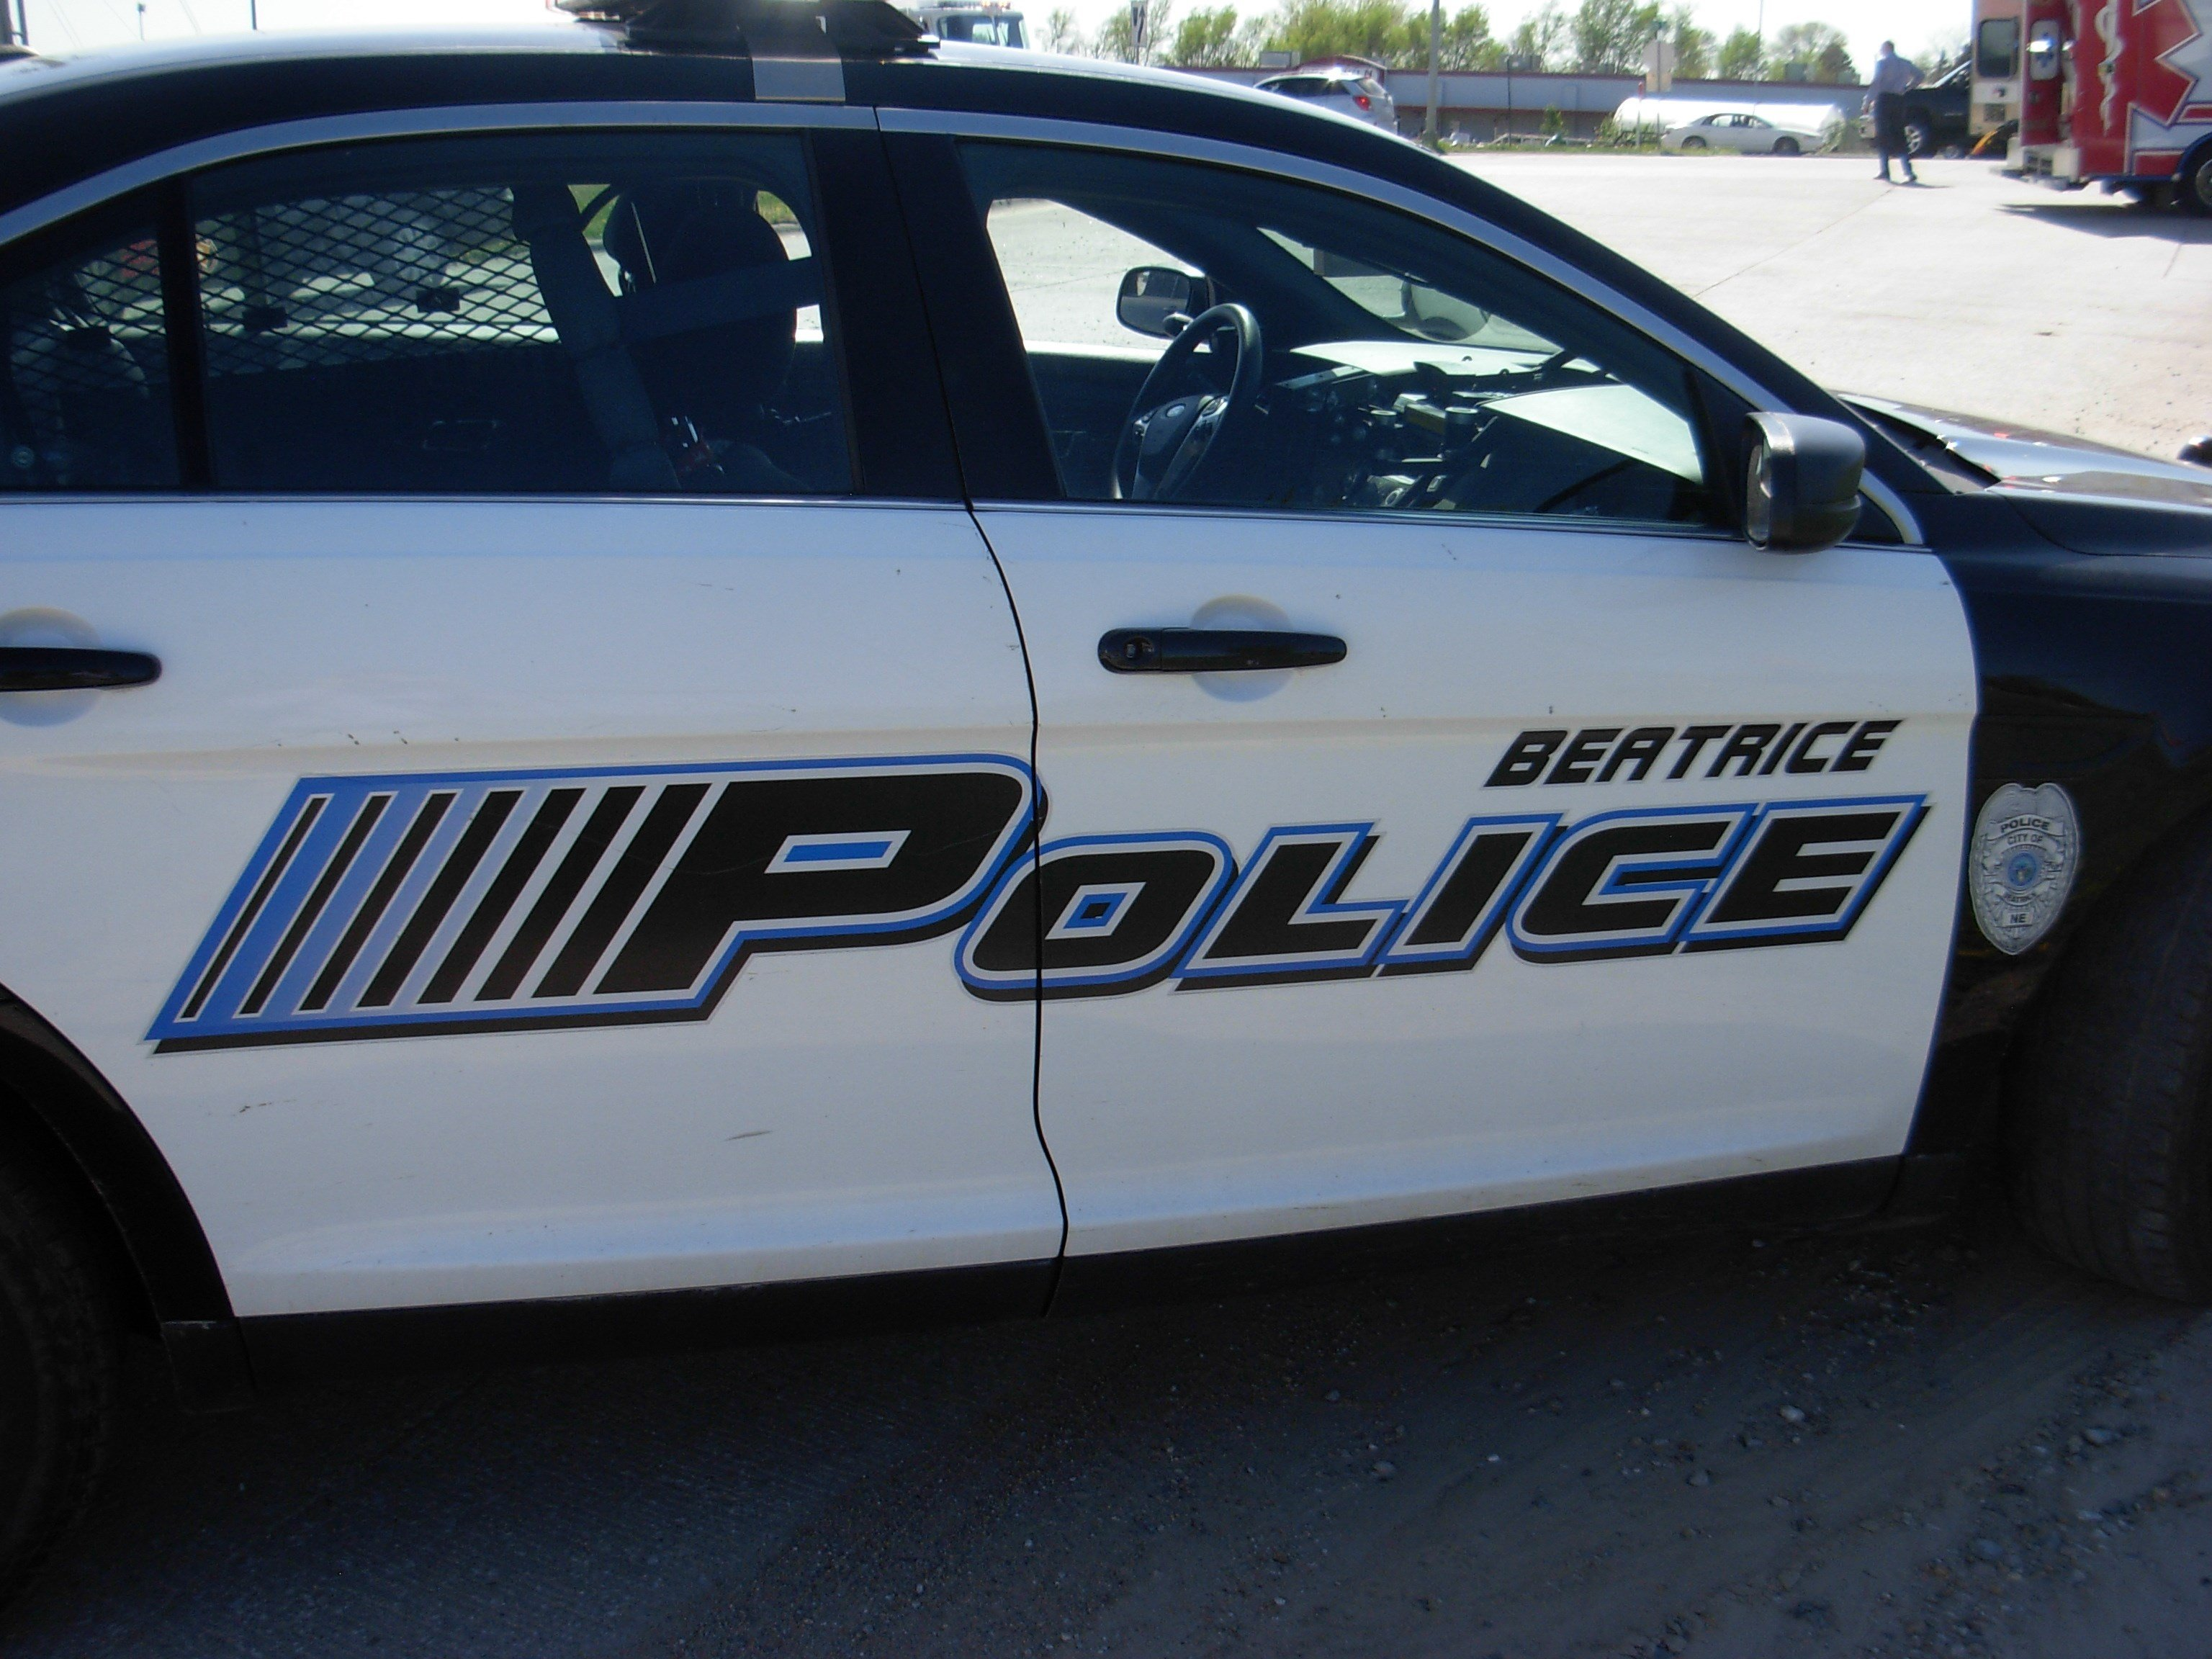 Man killed in west Beatrice while working on vehicle